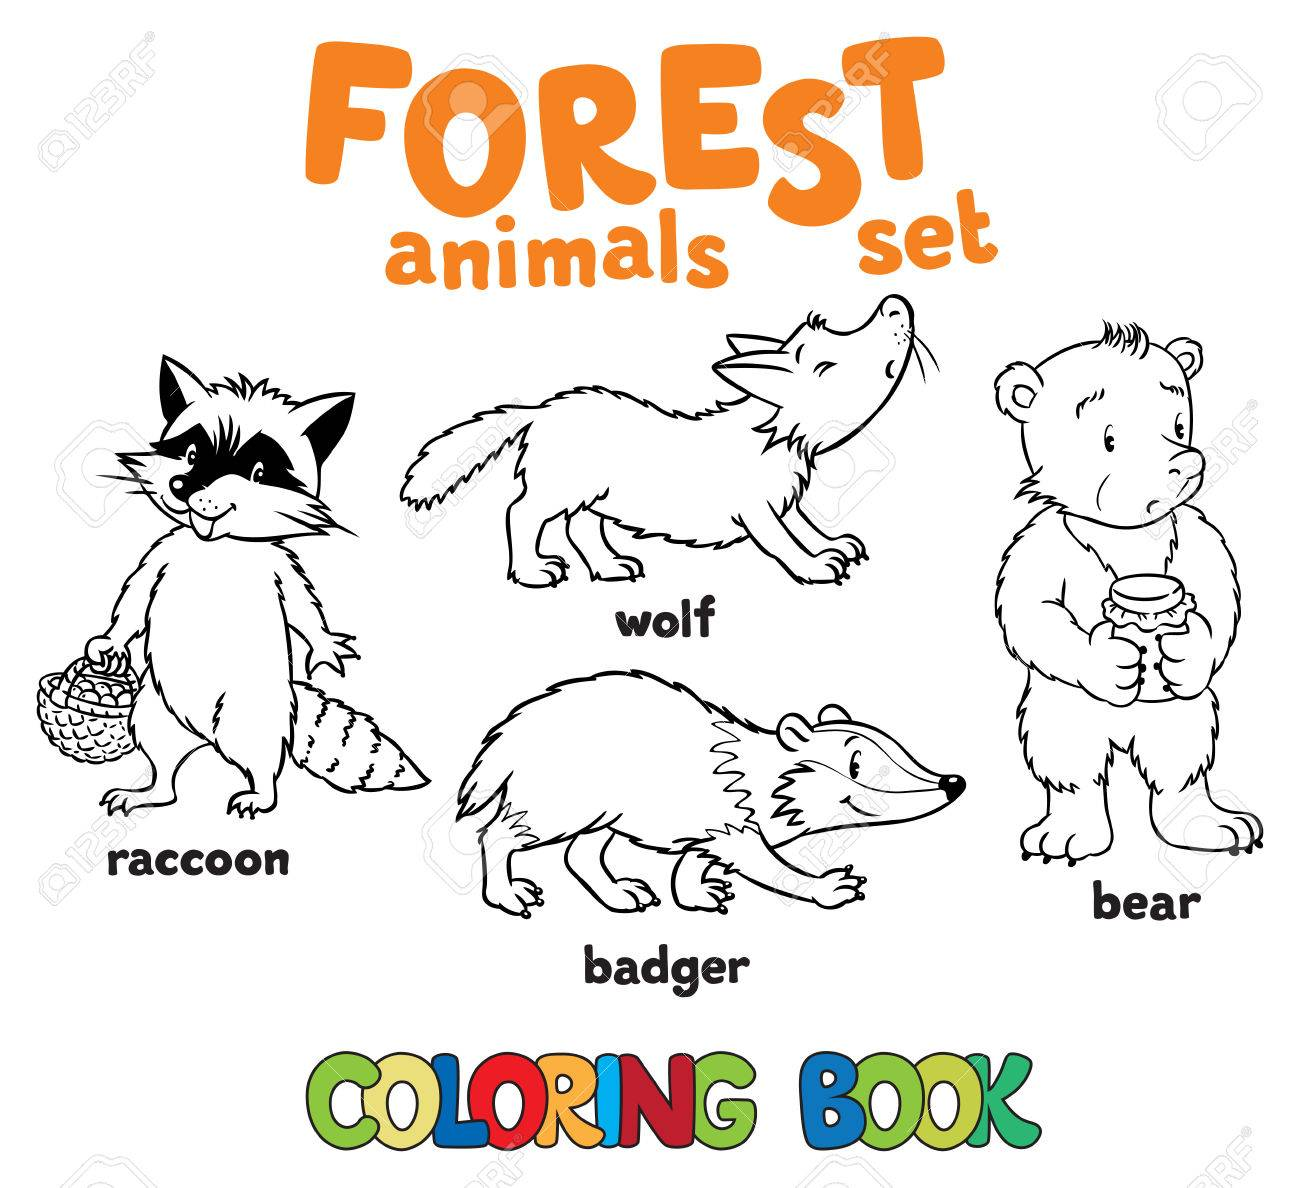 Coloring Book Set Of Funny Racoon, Wolf, Bagger And Bear. Children ...